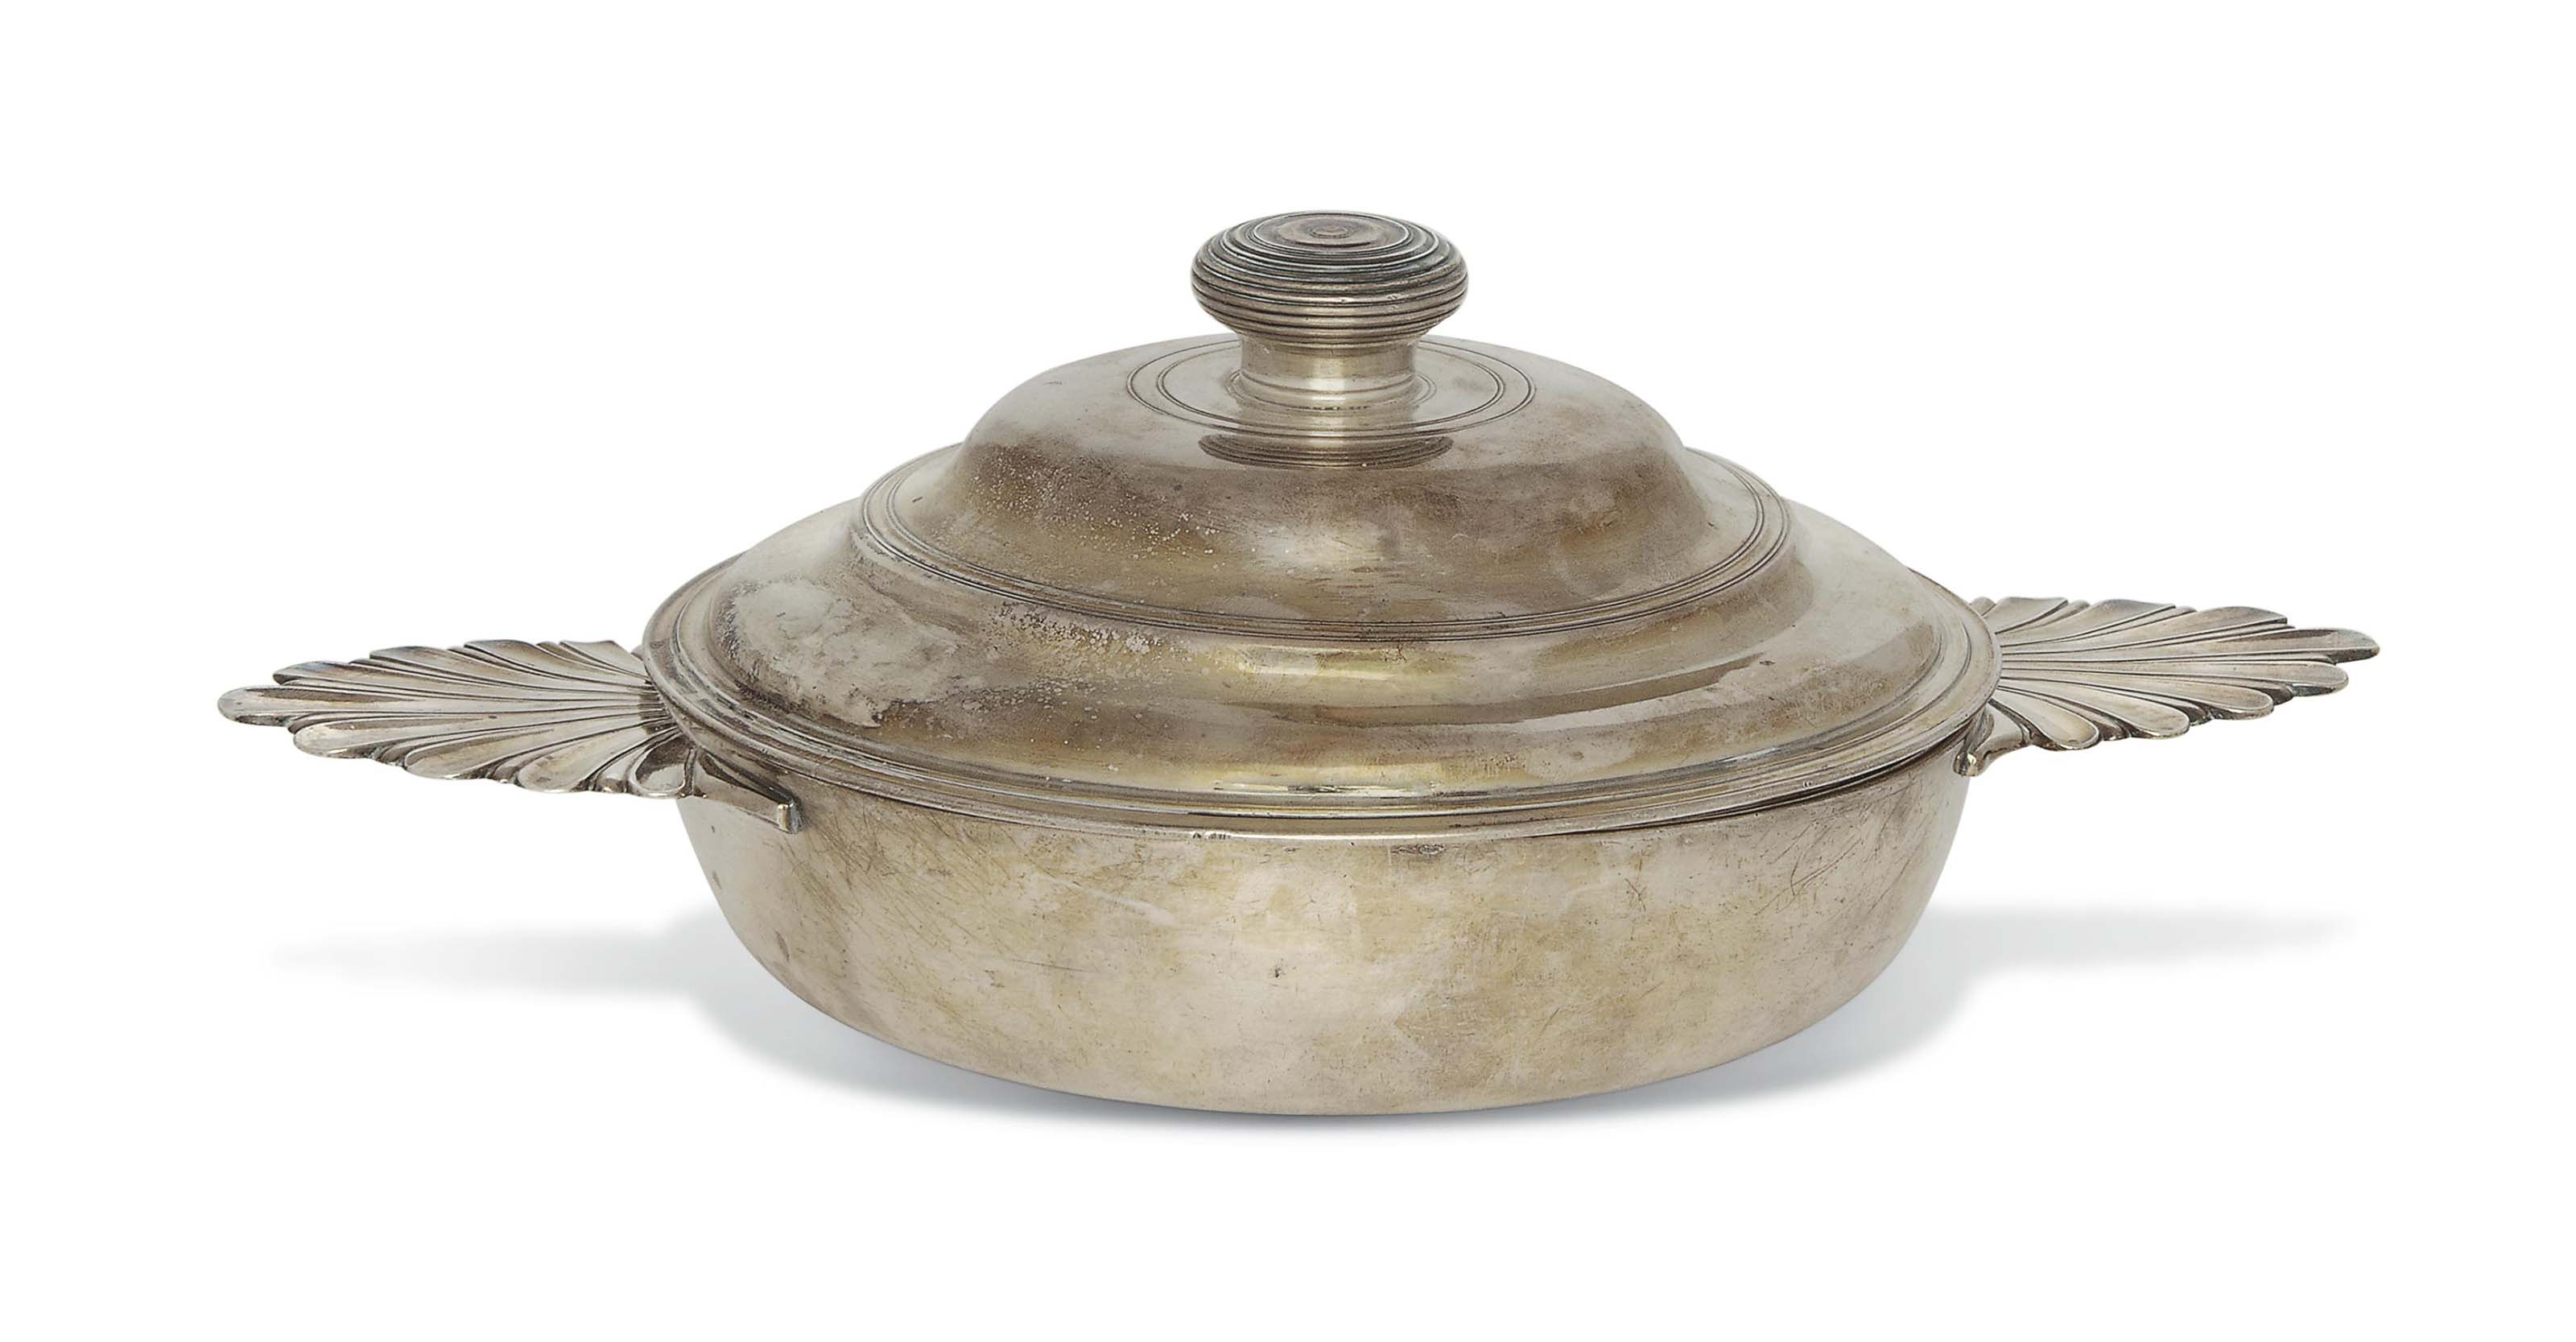 A FRENCH SILVER COVERED ECUELL